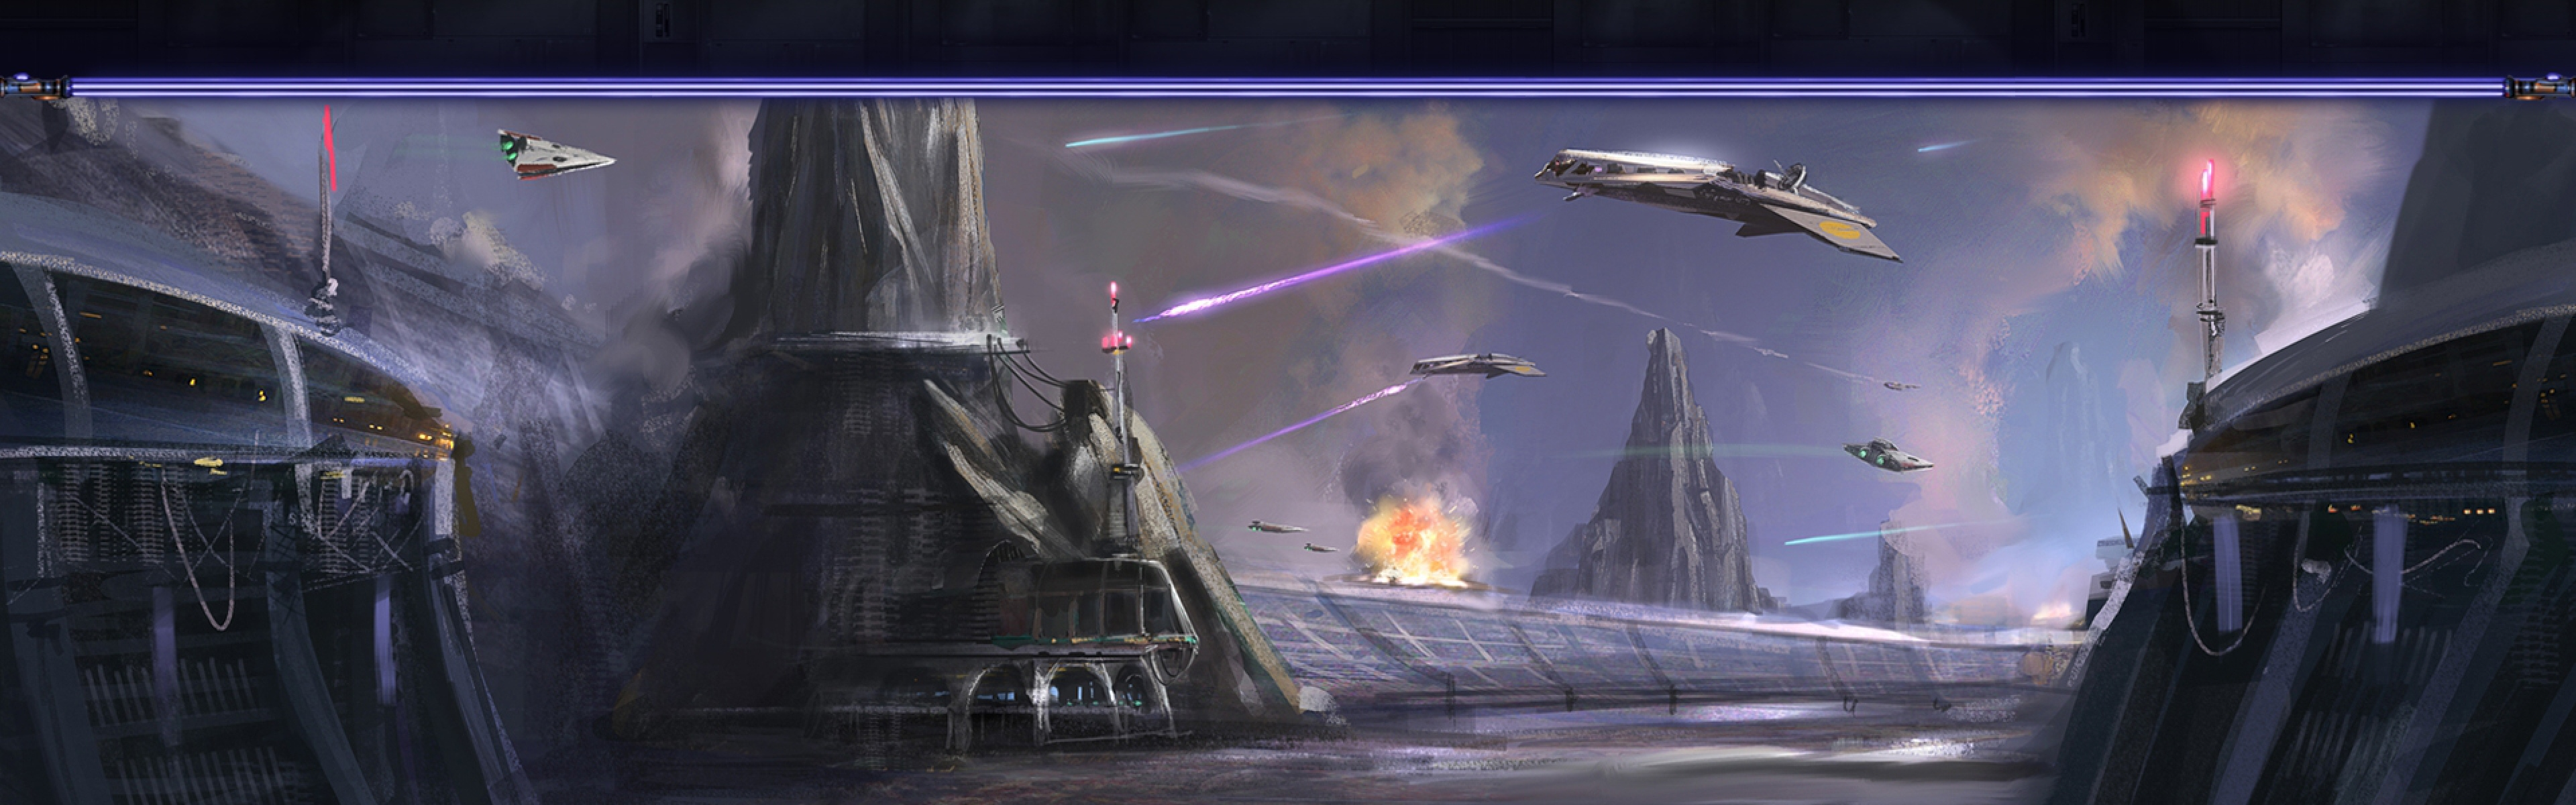 3840x1200 Wallpaper star wars the old republic airships shooting 3840x1200